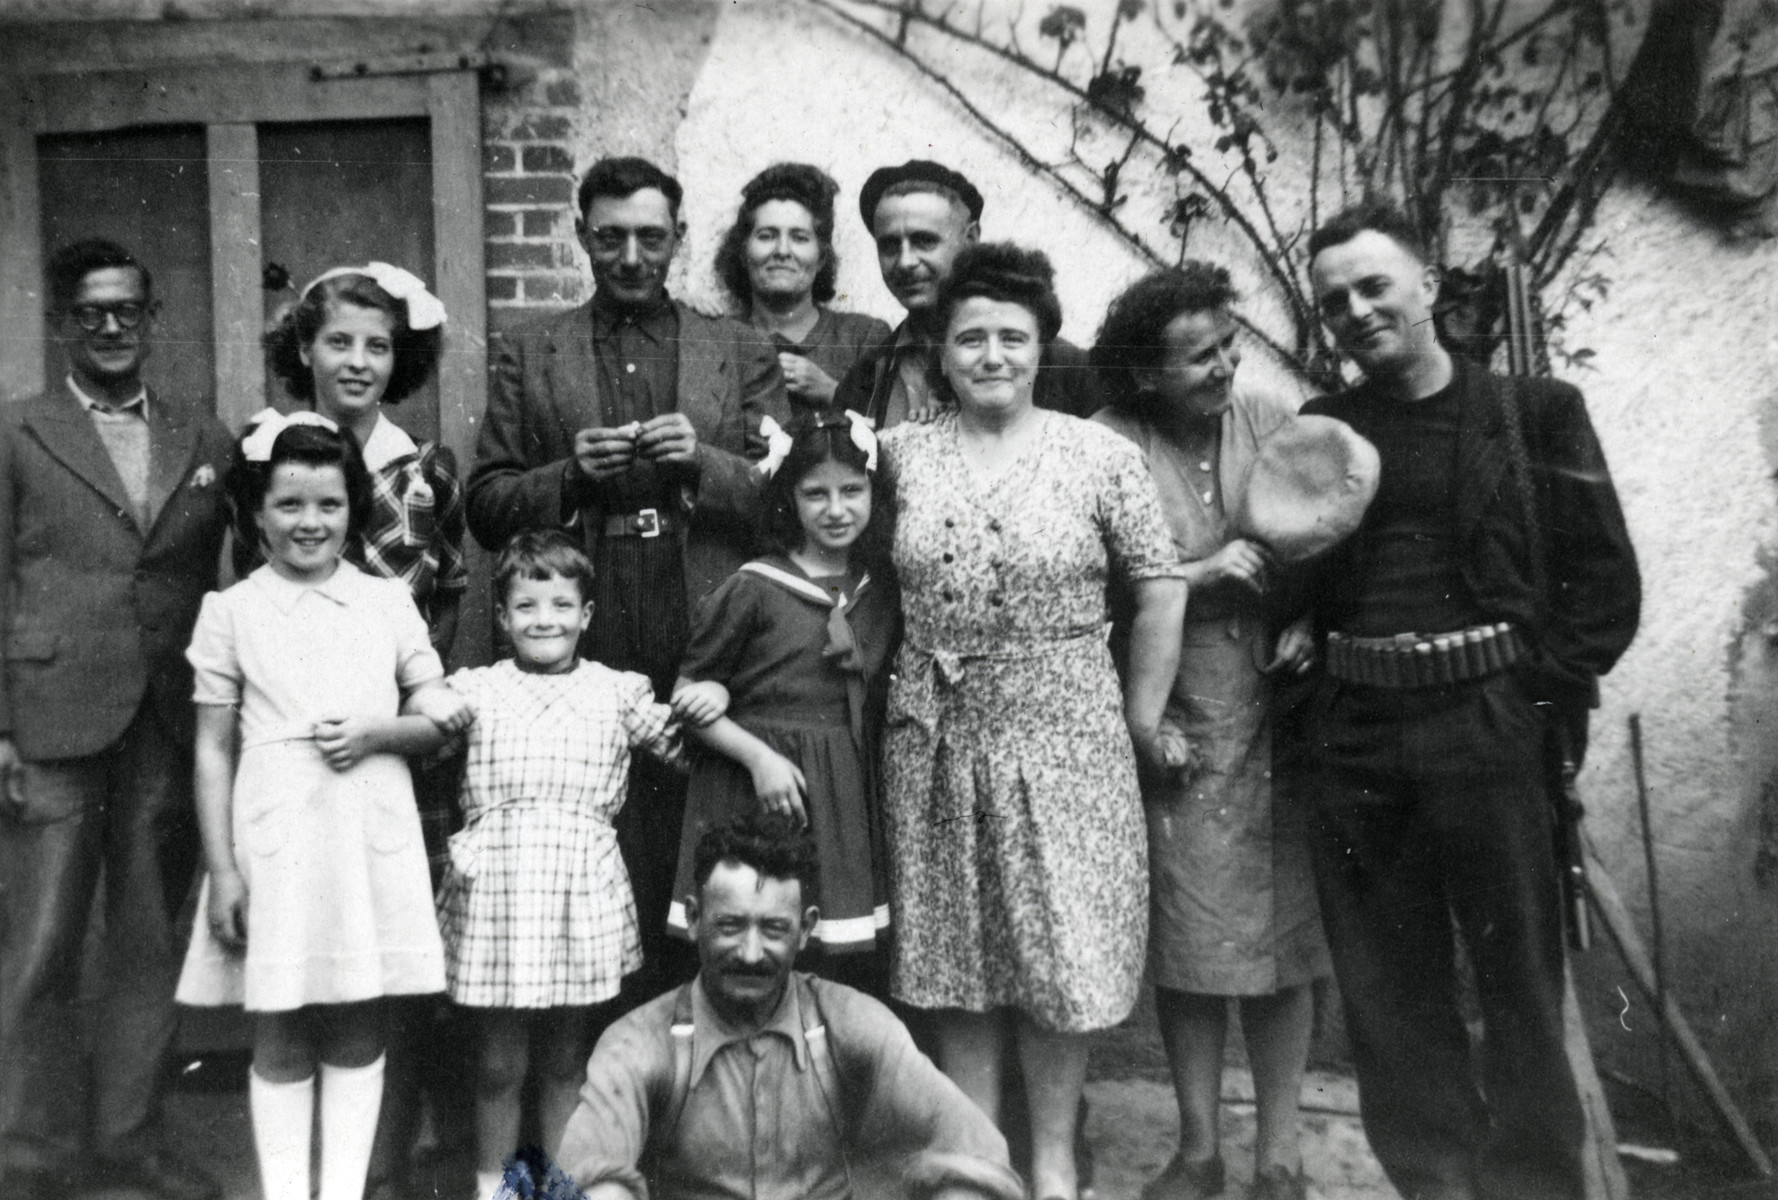 Four children and eight adults pose outside a building.   Pictured in the middle is Beatrice Heffer. Jean and Maria Gasser stand behind her, next to Beatrice's father, Alfred Kahn.